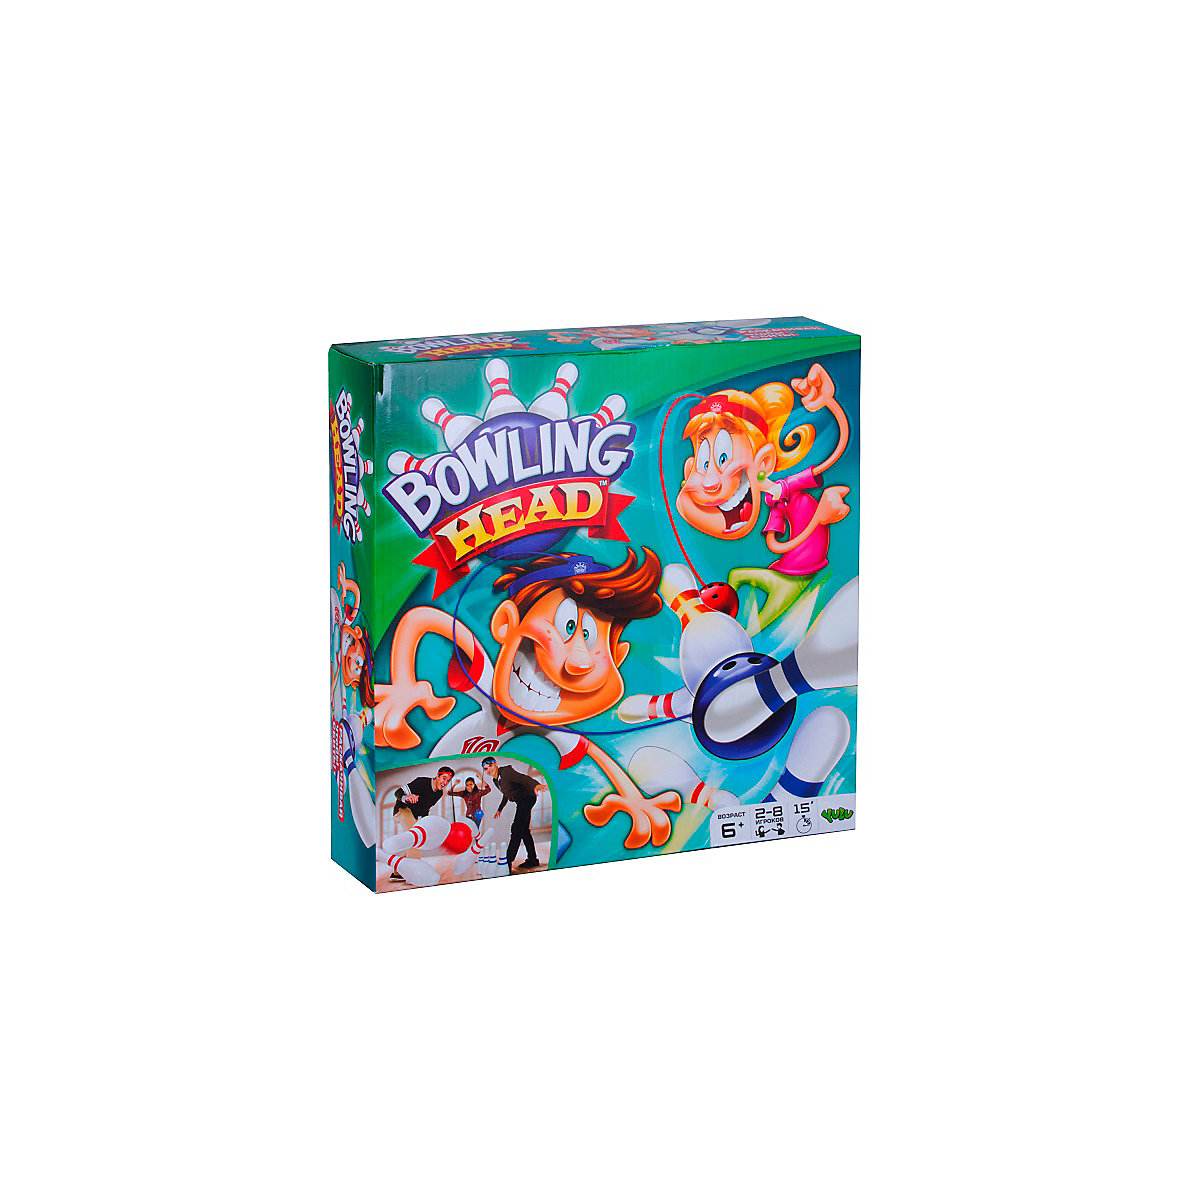 Party Games YULU 10248251 toys toy board games game boys girls boy girl children party sarong party girls